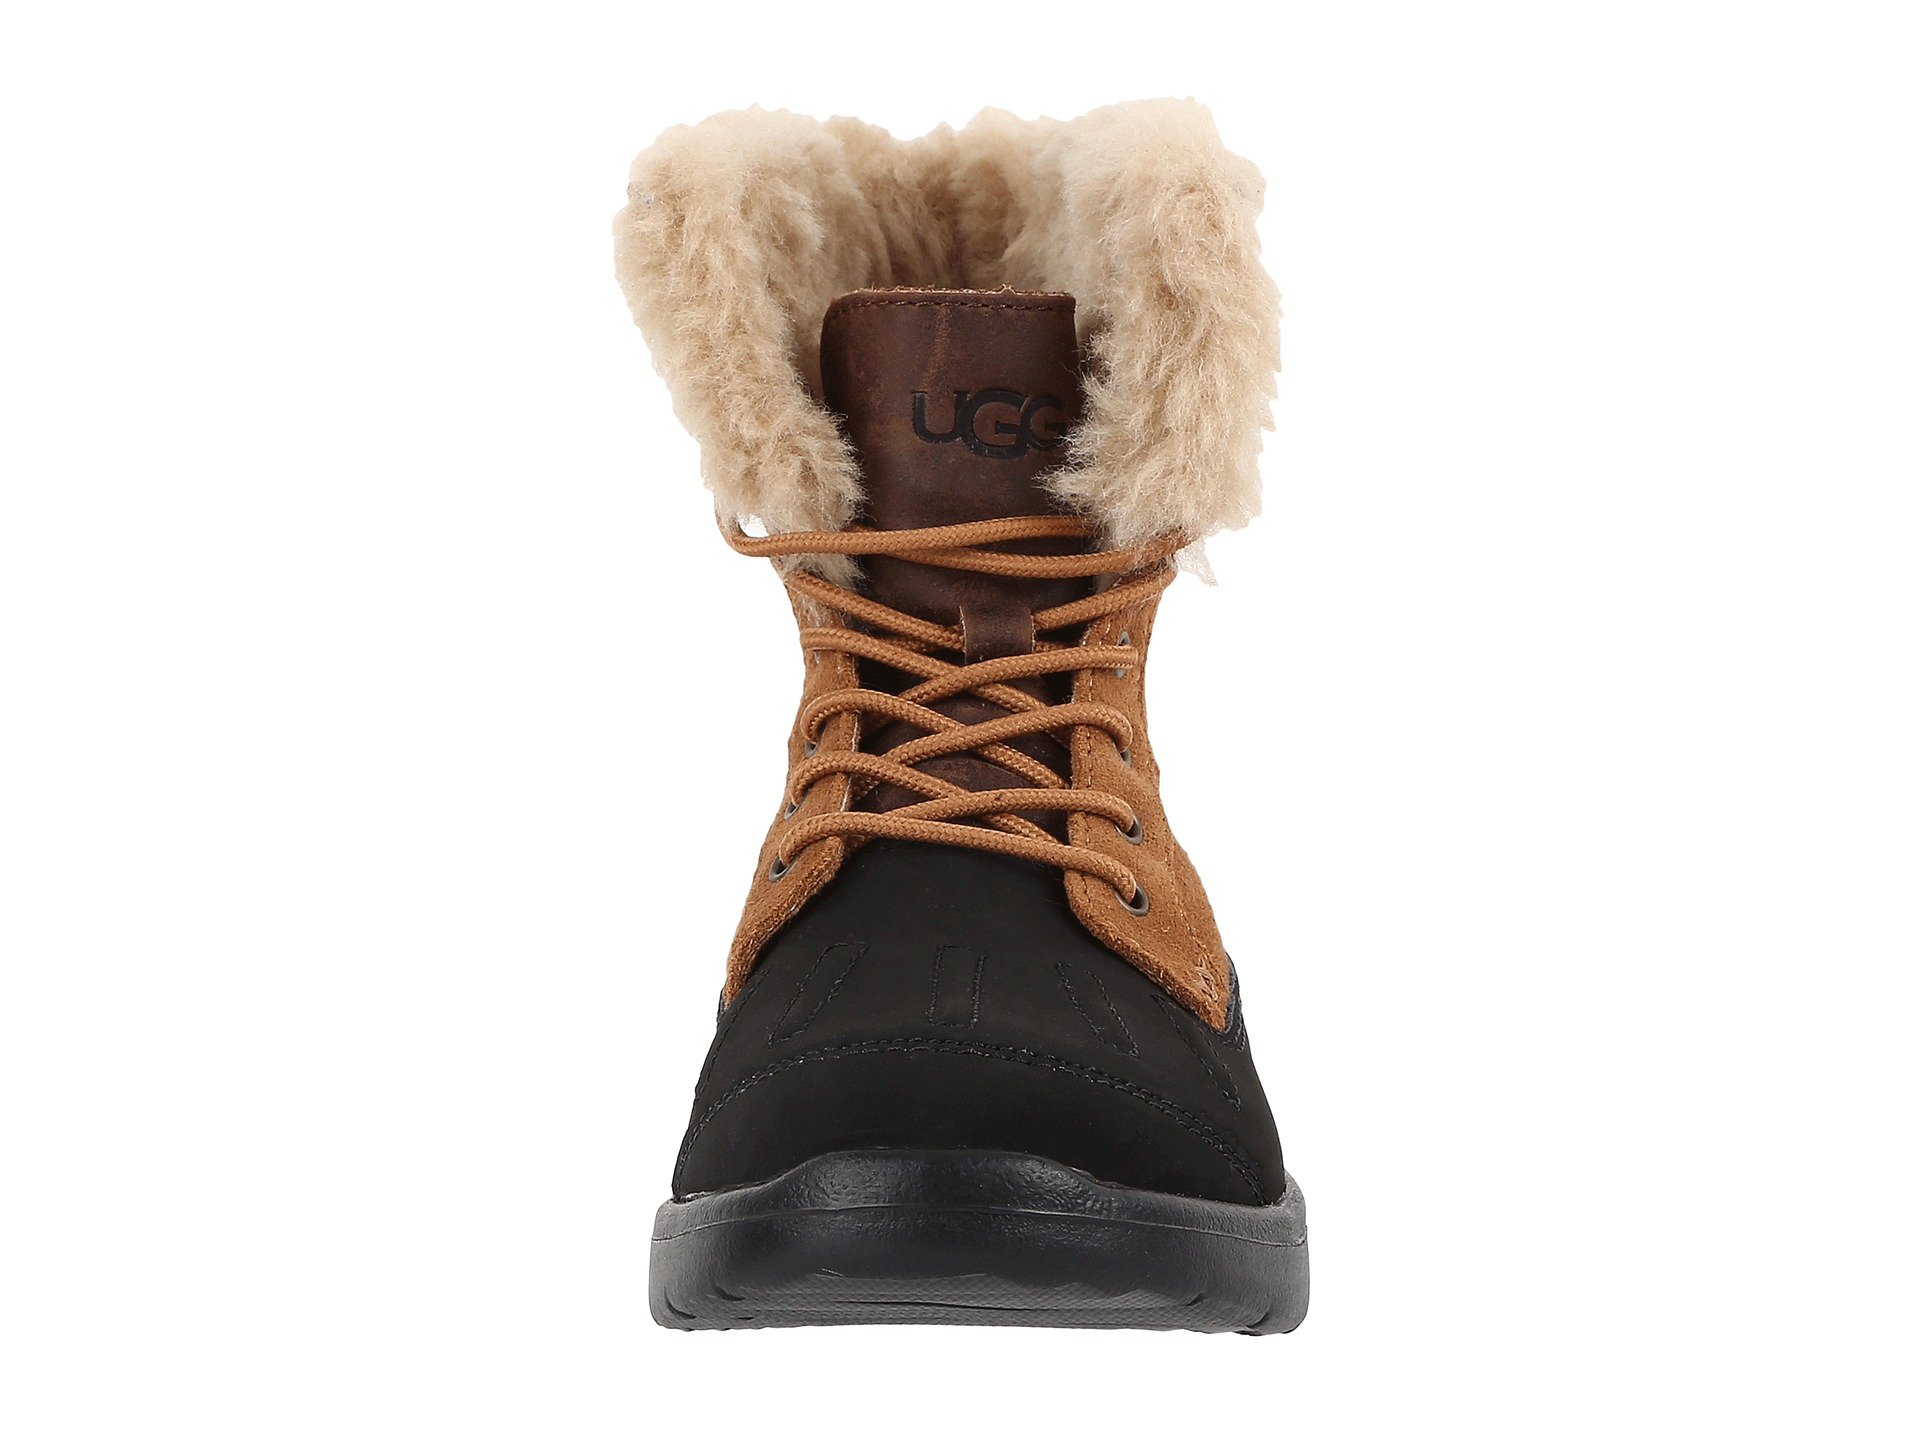 Ugg Boots Zappo Gift Cards At Walgreens | NATIONAL SHERIFFS ...